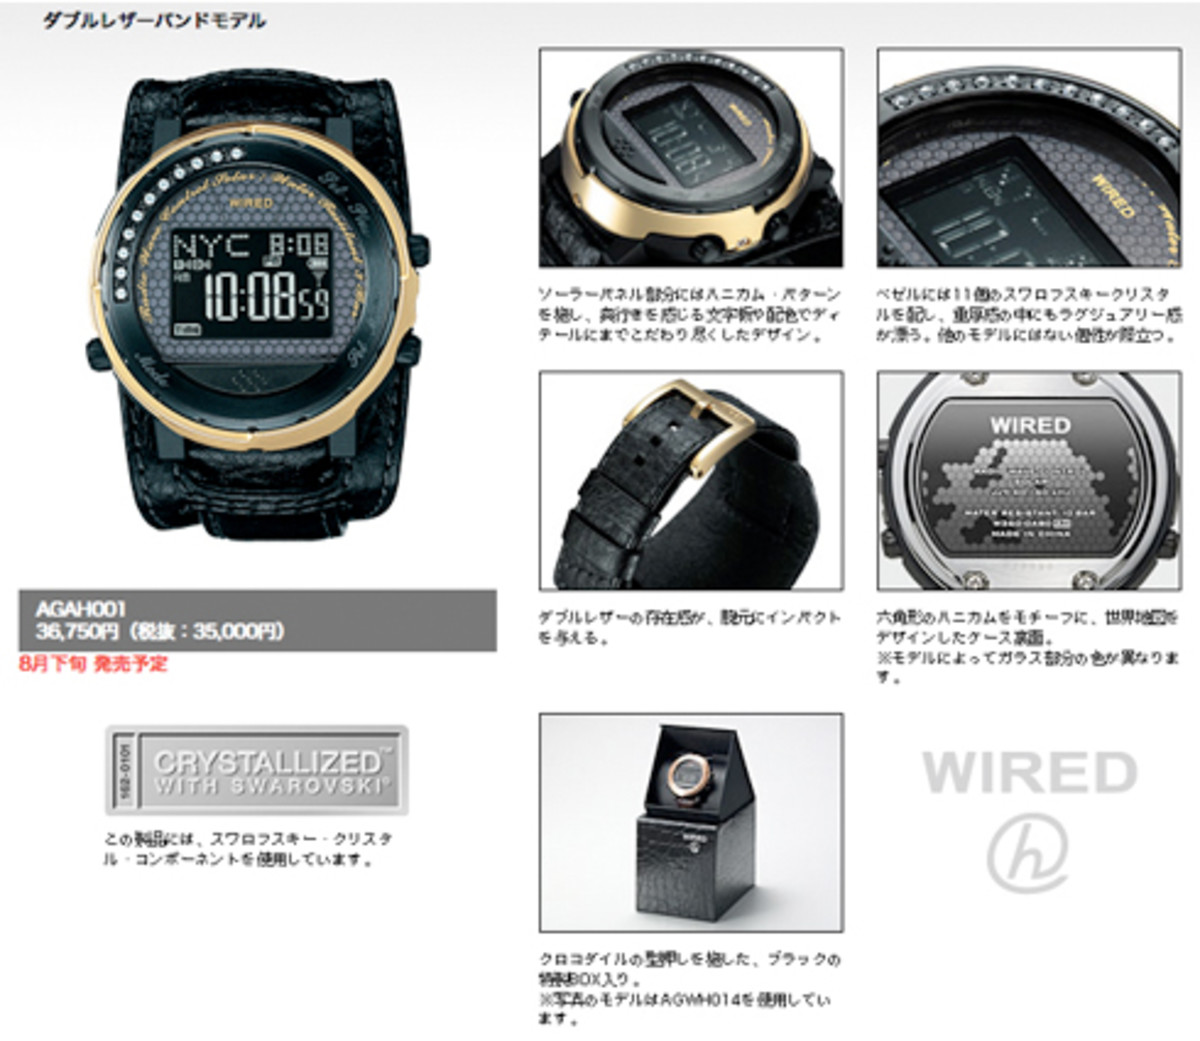 WIRED h - Double Leather Band Watches - Freshness Mag